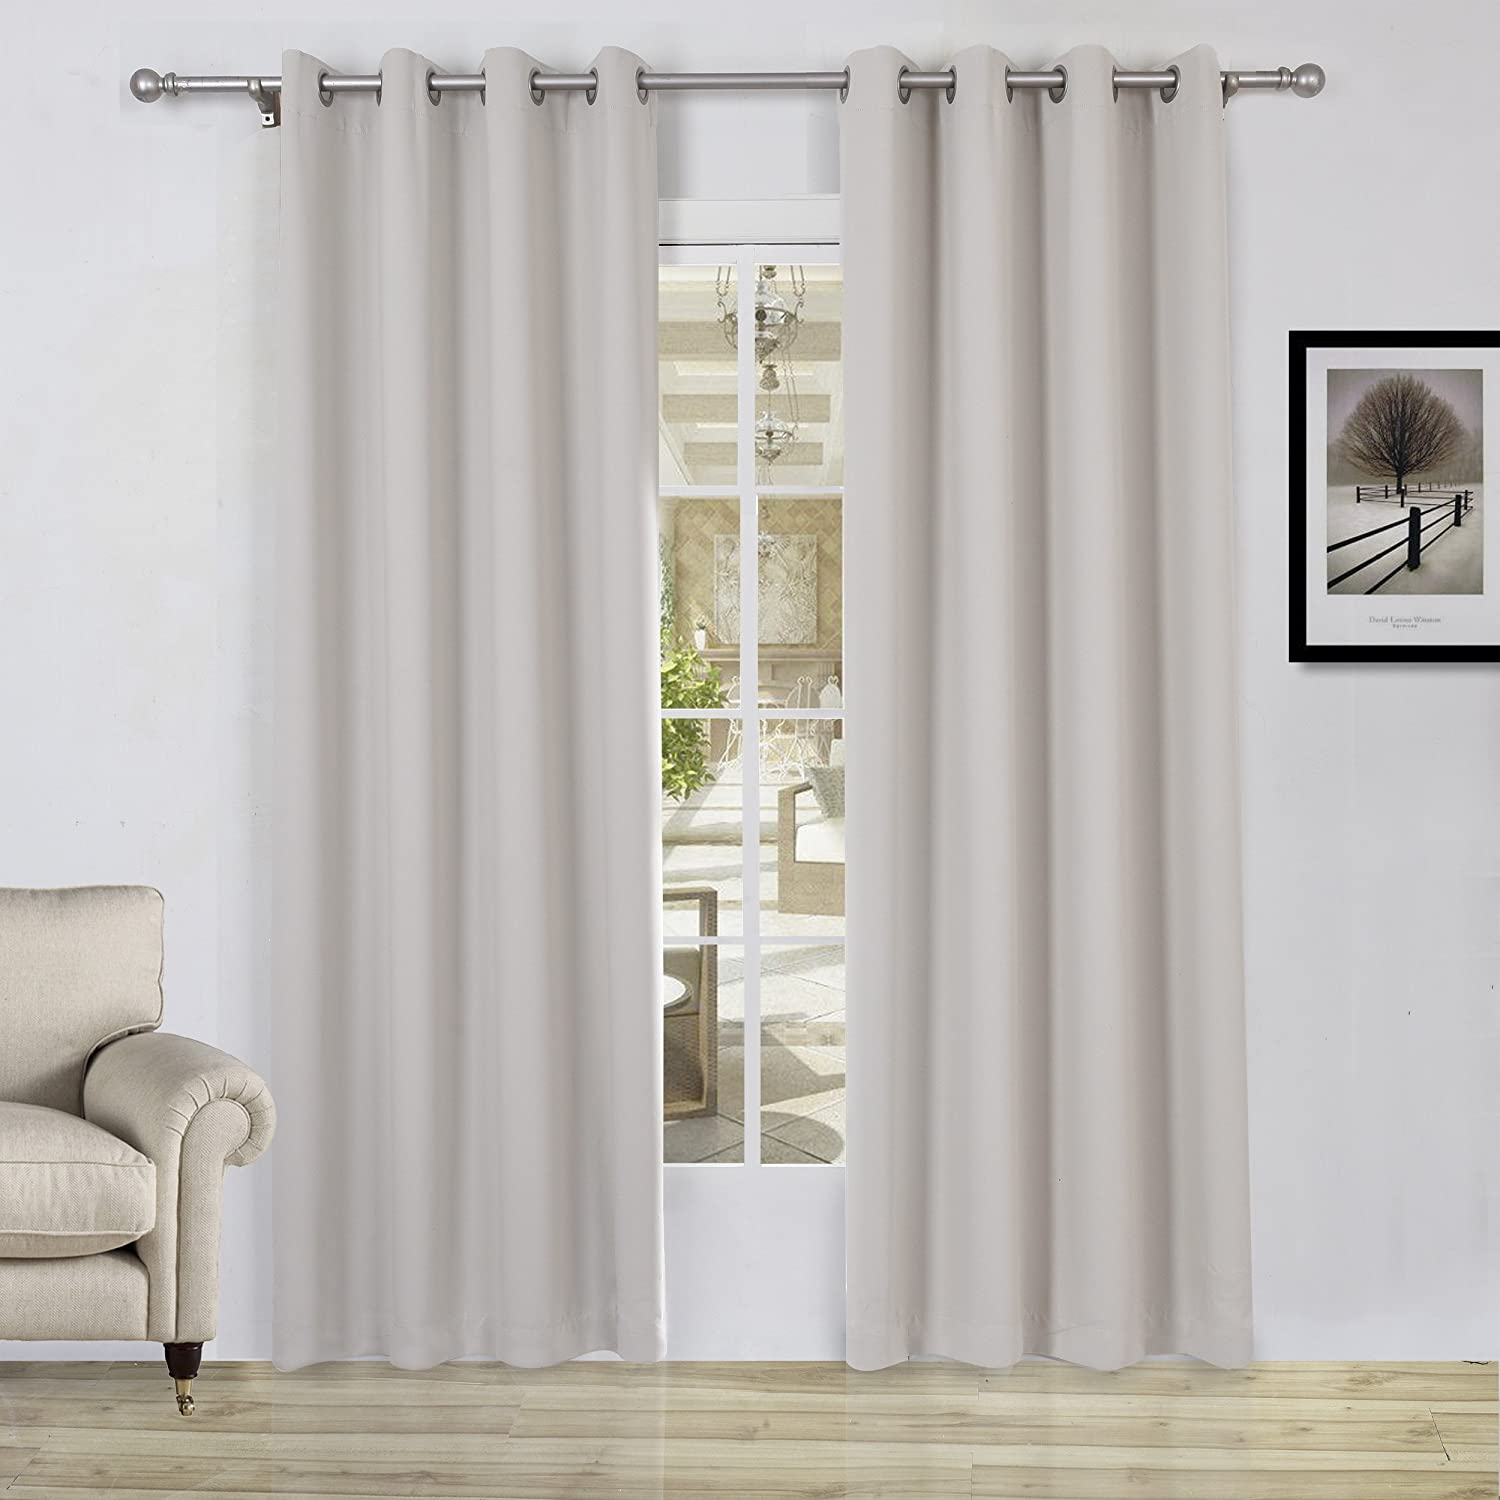 color hotel online top fashion ring nb room cheap pure curtain curtains original bedroom window grommet cafe blackout product living for design by